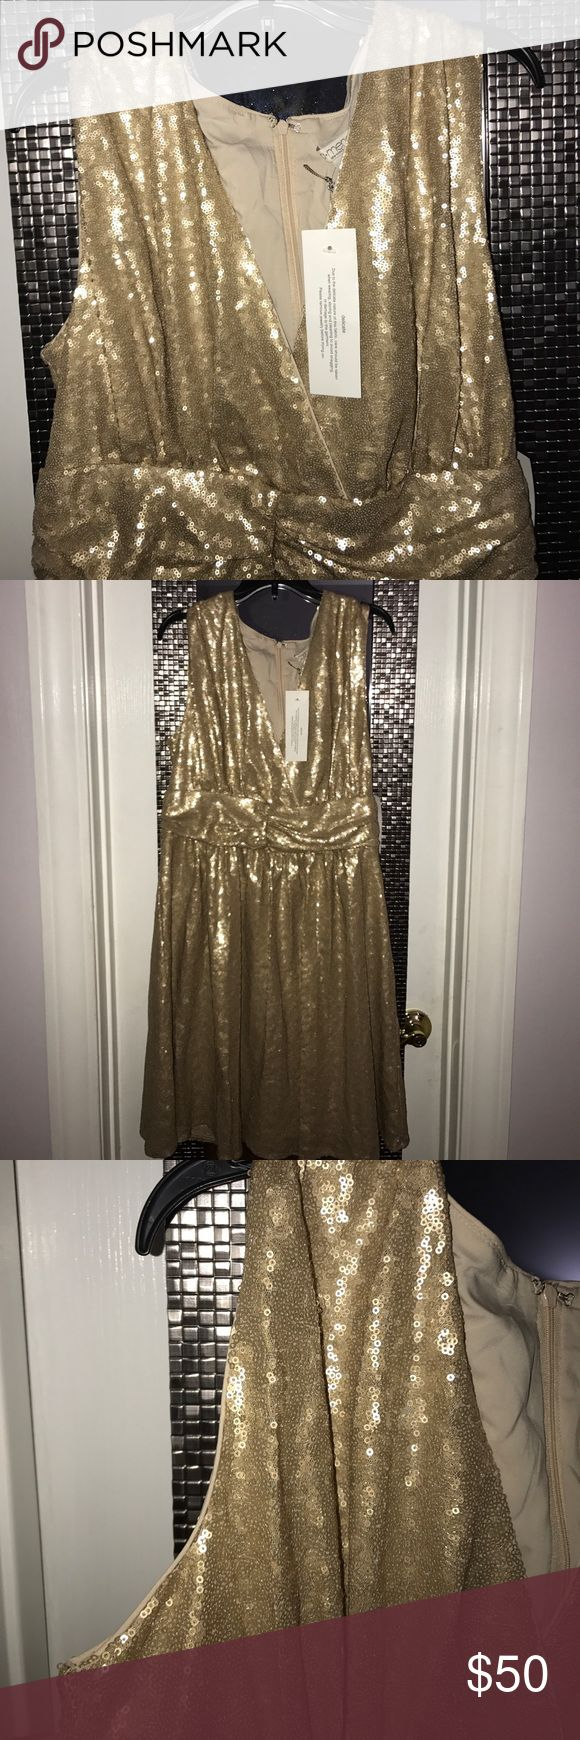 Eva Mendes Sequin Dress (Gold) Beautiful cocktail or dress to wear out to a part that stops above the knee, brand new, never worn, zips up the back as pic shows and open in front as pic shows pleated around waist that drops beautifully when on! I have a navy blue one and just never got to wear this one it's a size large and I've lost over 70 lbs so I can no longer fit! Eva Mendes Dresses Midi